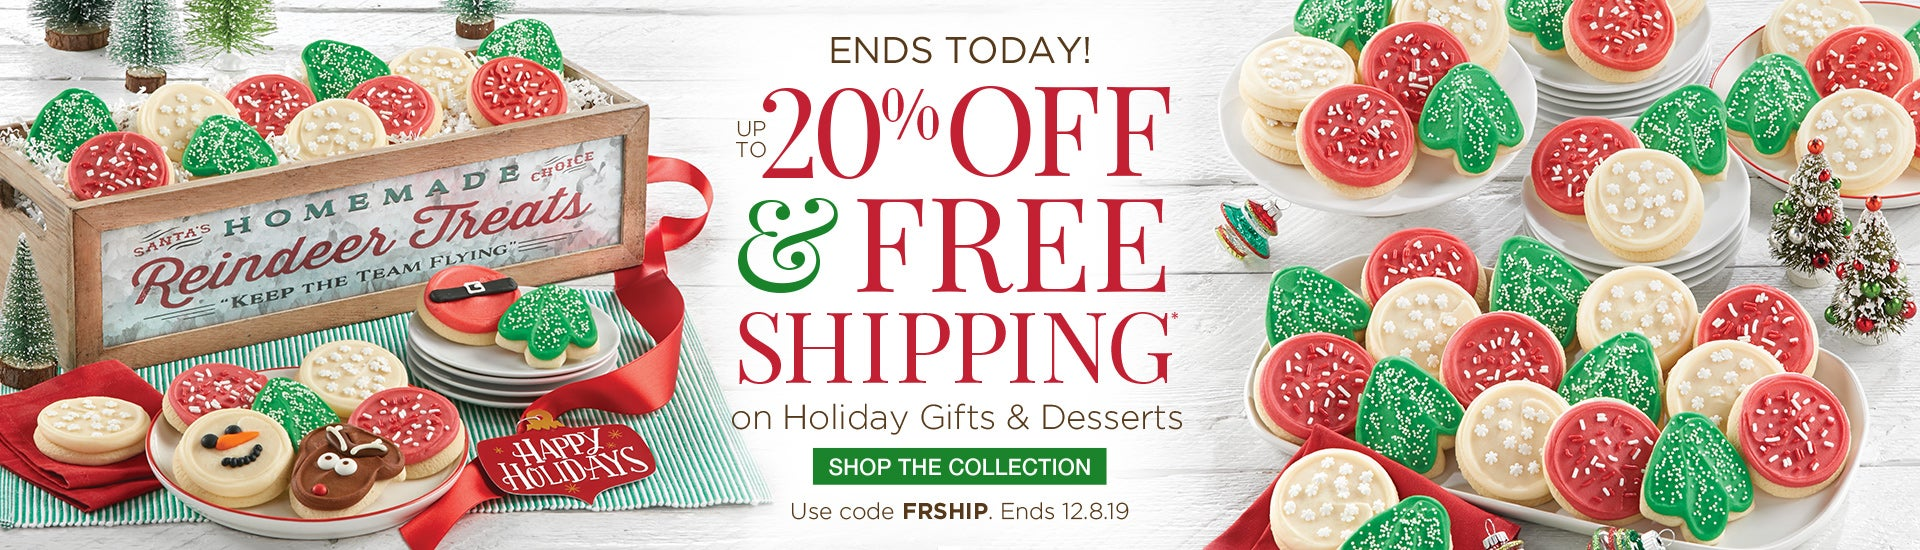 Up to 20% off and Free Shipping